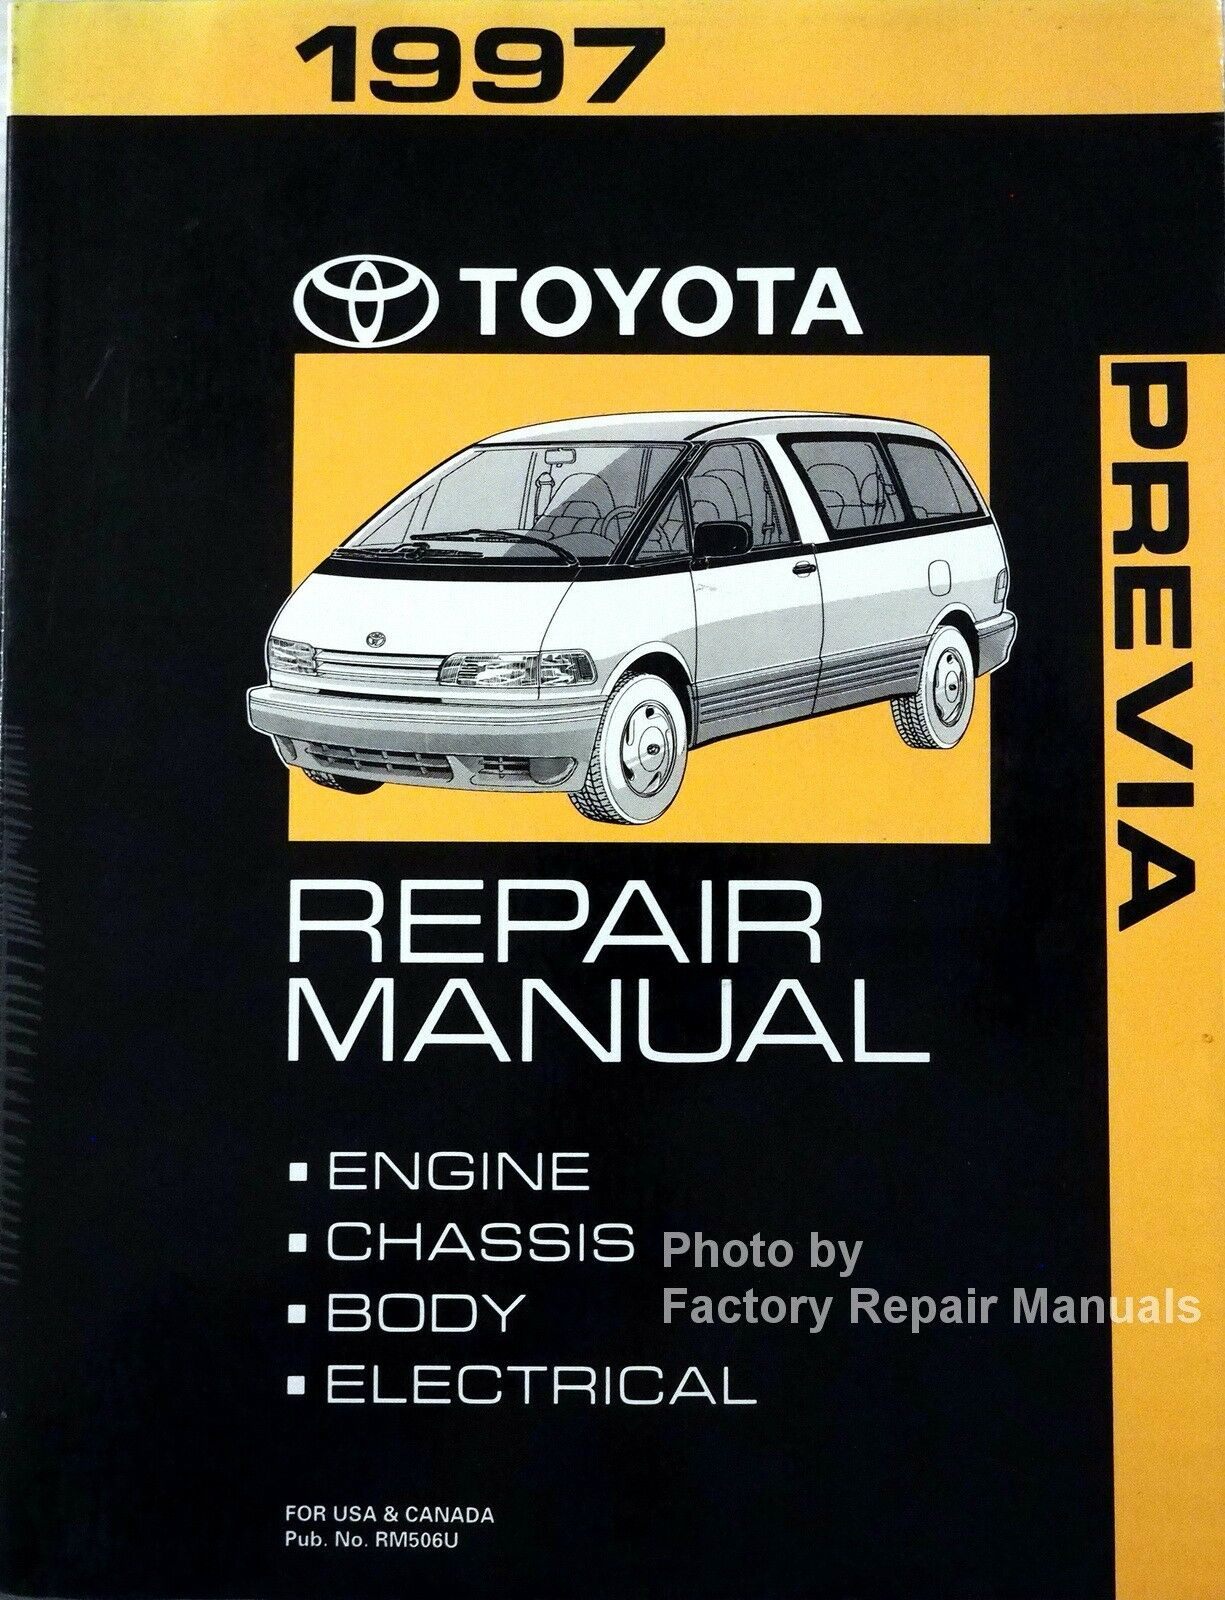 1997 Toyota Previa Mini-Van Factory Service Manual Original Shop Repair Book